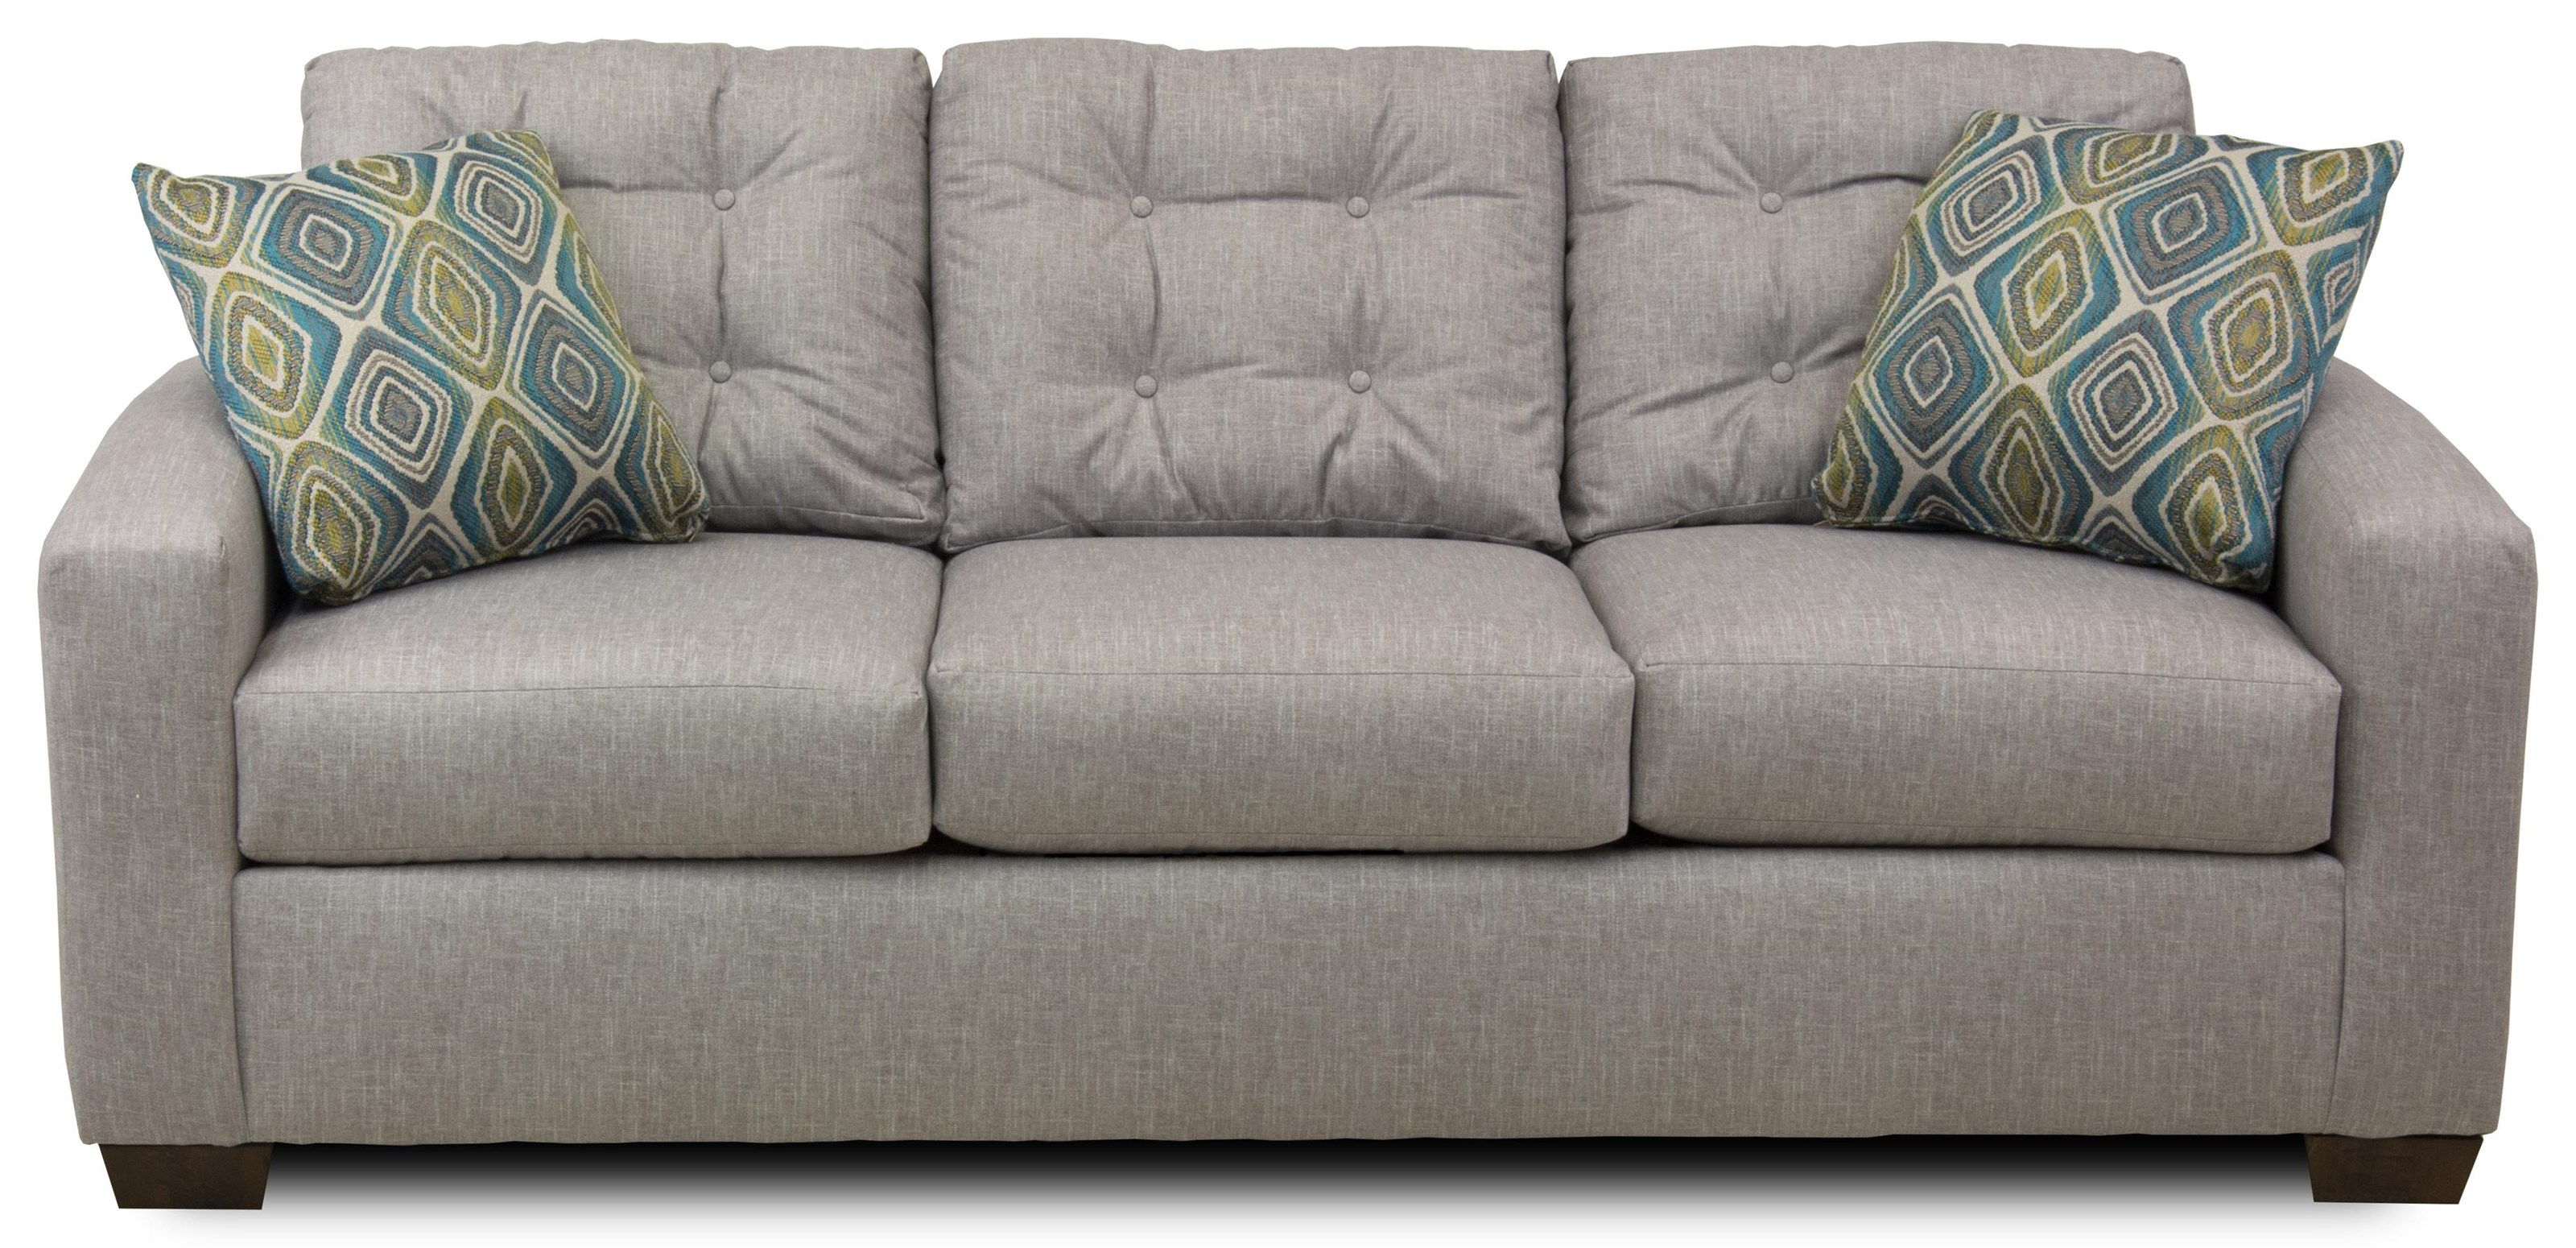 Contemporary Sofa with Tufted Back Cushions